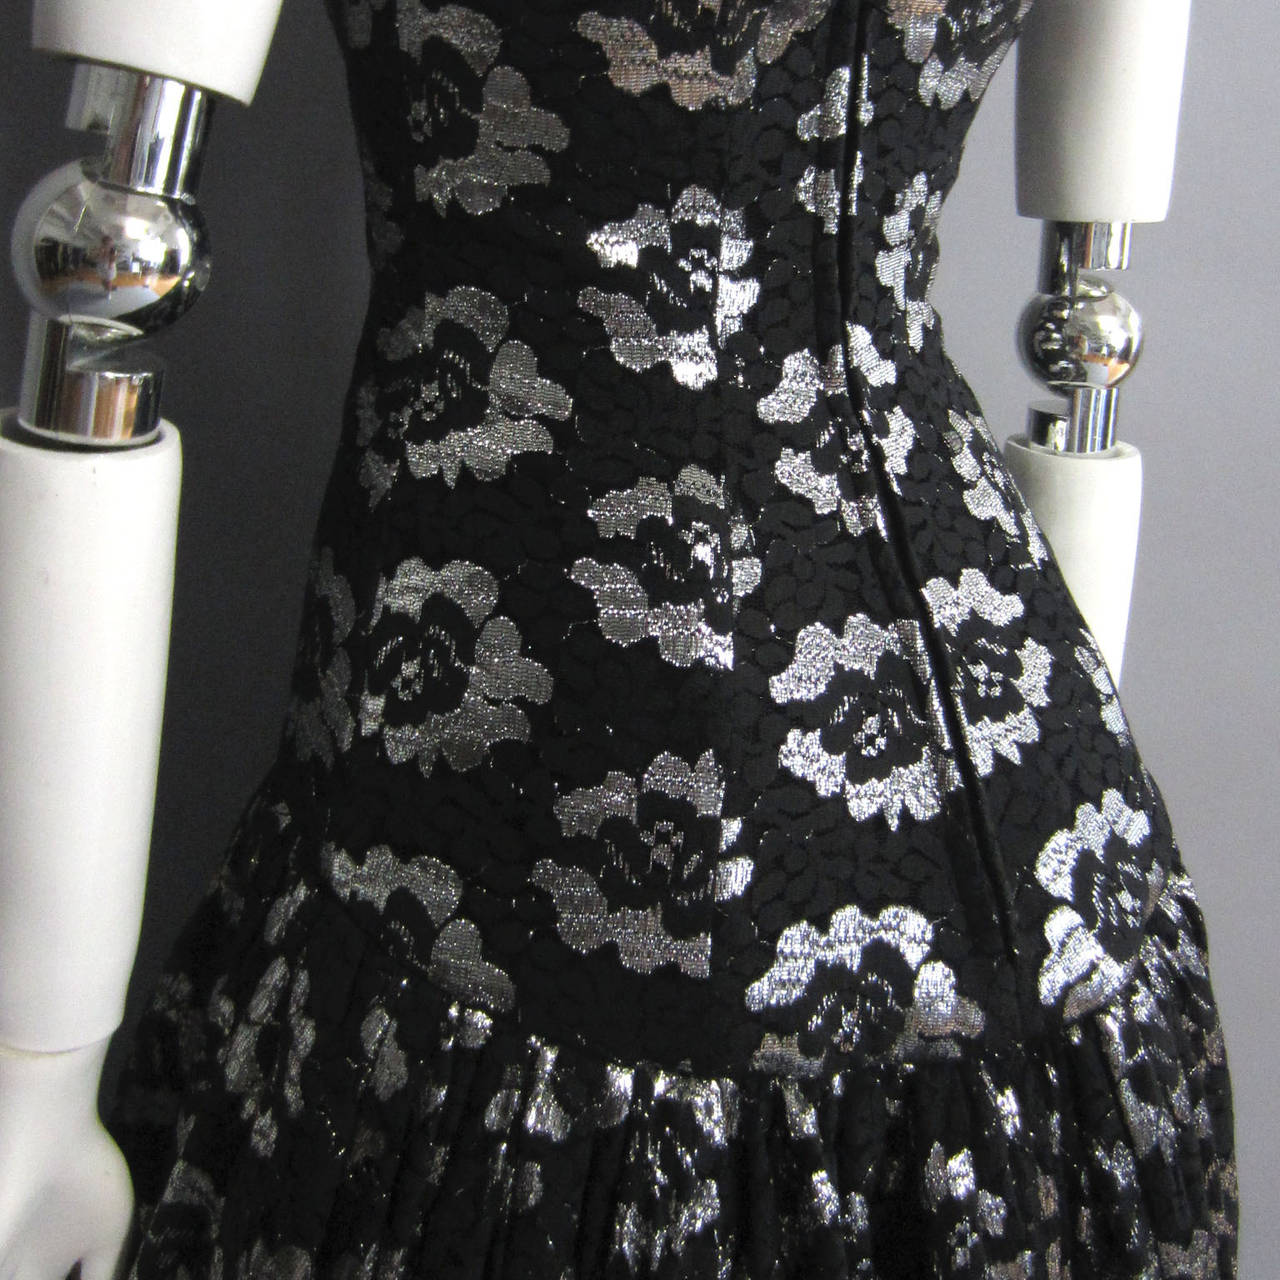 Black 1980s LILLIE RUBIN Silver Lame Floral Lace Dress For Sale